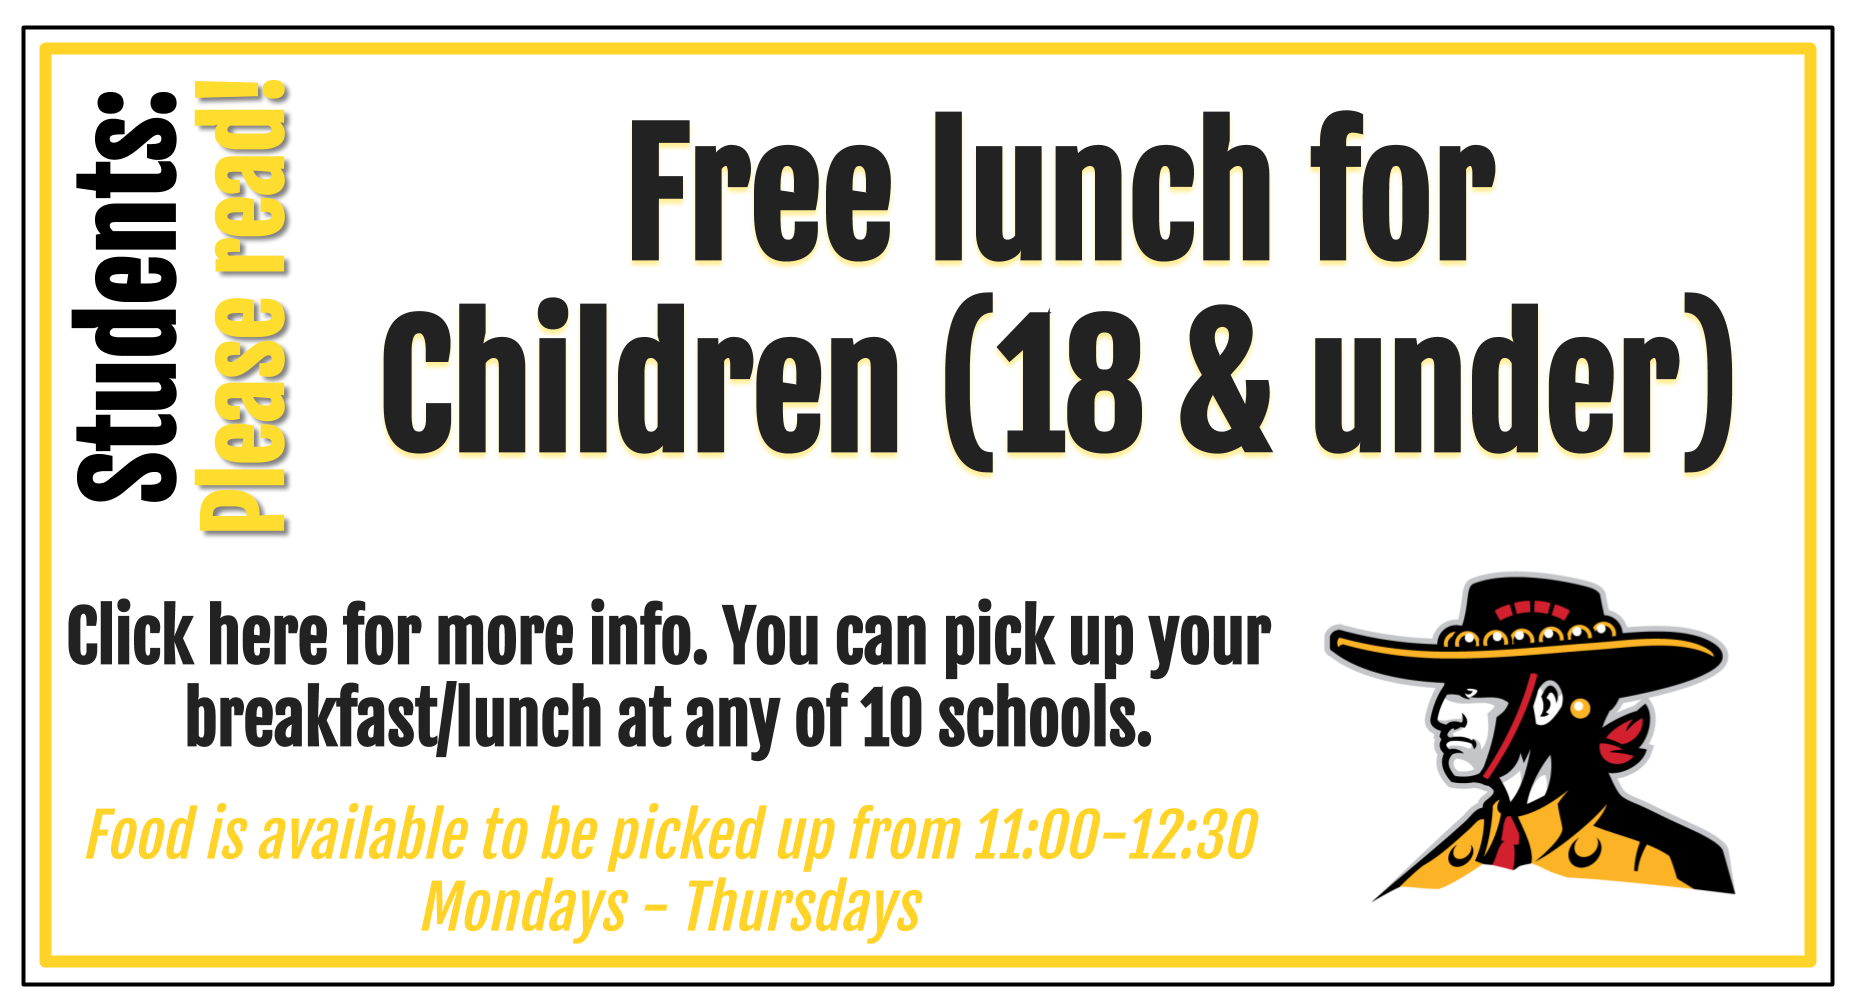 Free lunch 11-12:30pm